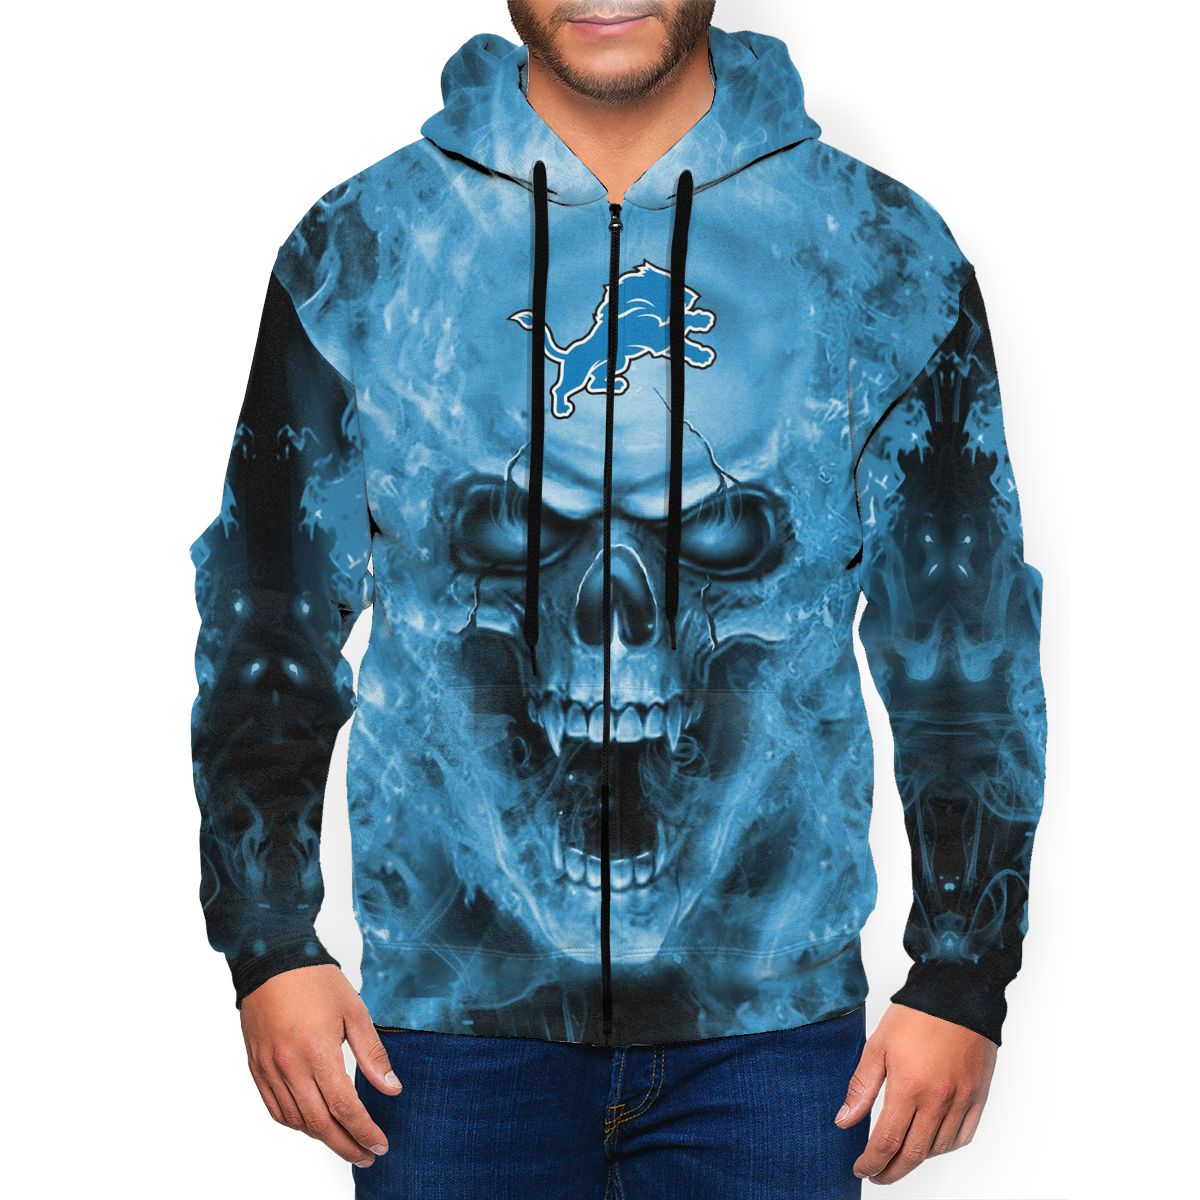 3D Skull Lions Men's Zip Hooded Sweatshirt